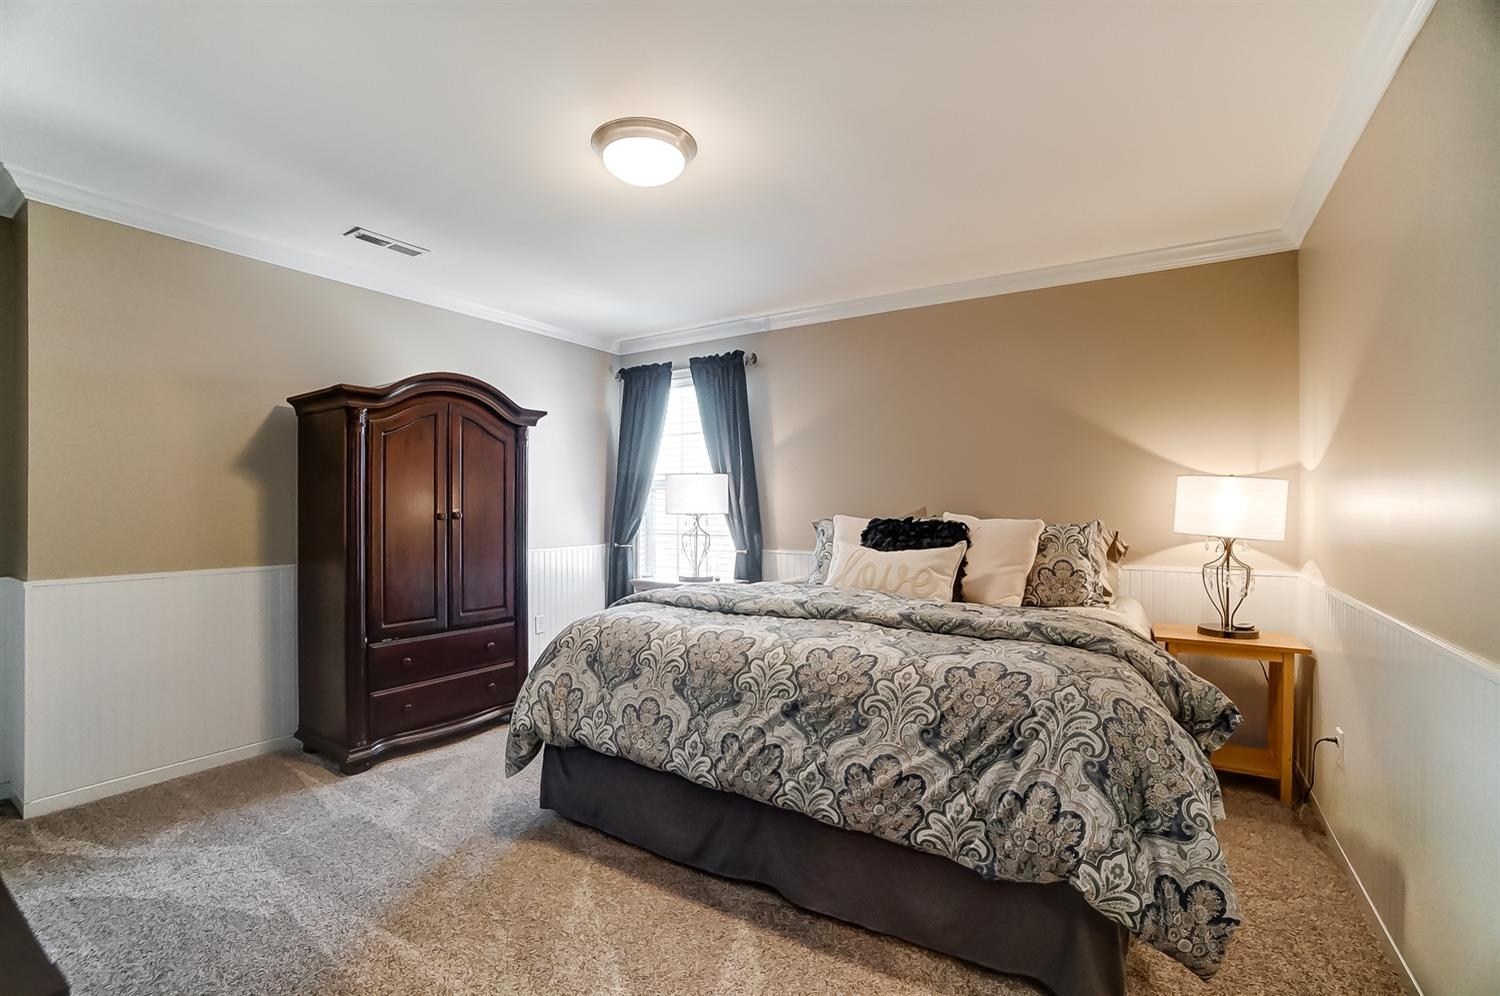 Bedroom 3 also features crown molding, beadboard and walk-in closet.